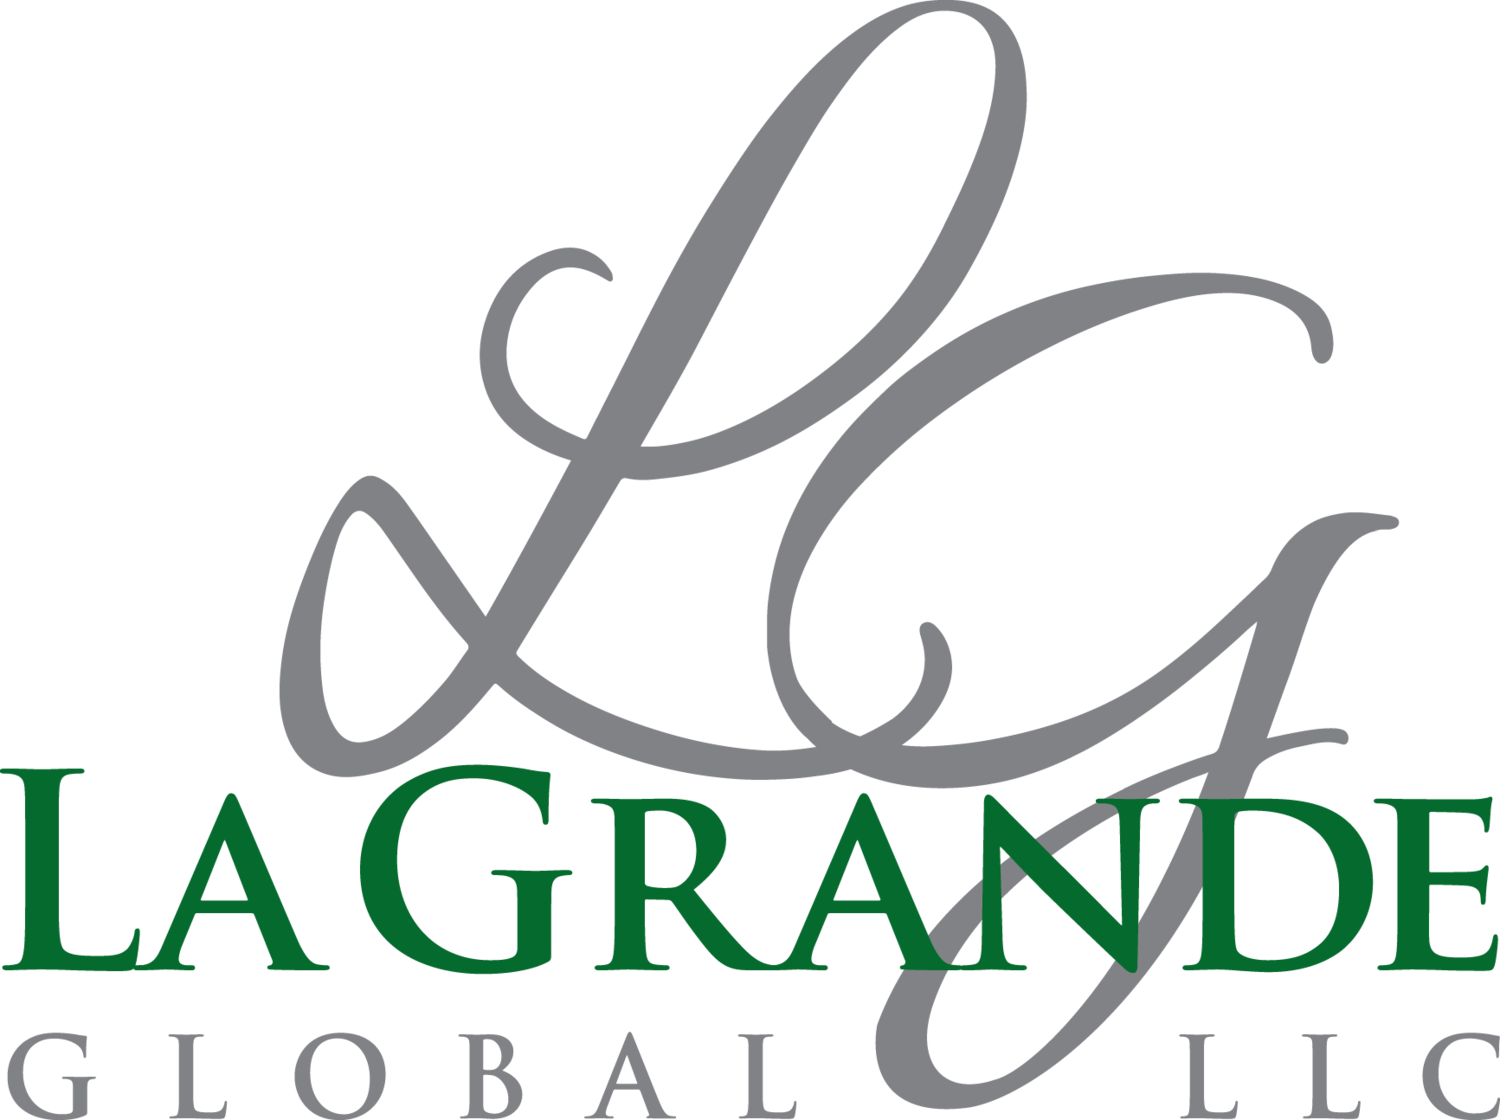 LaGrande Global